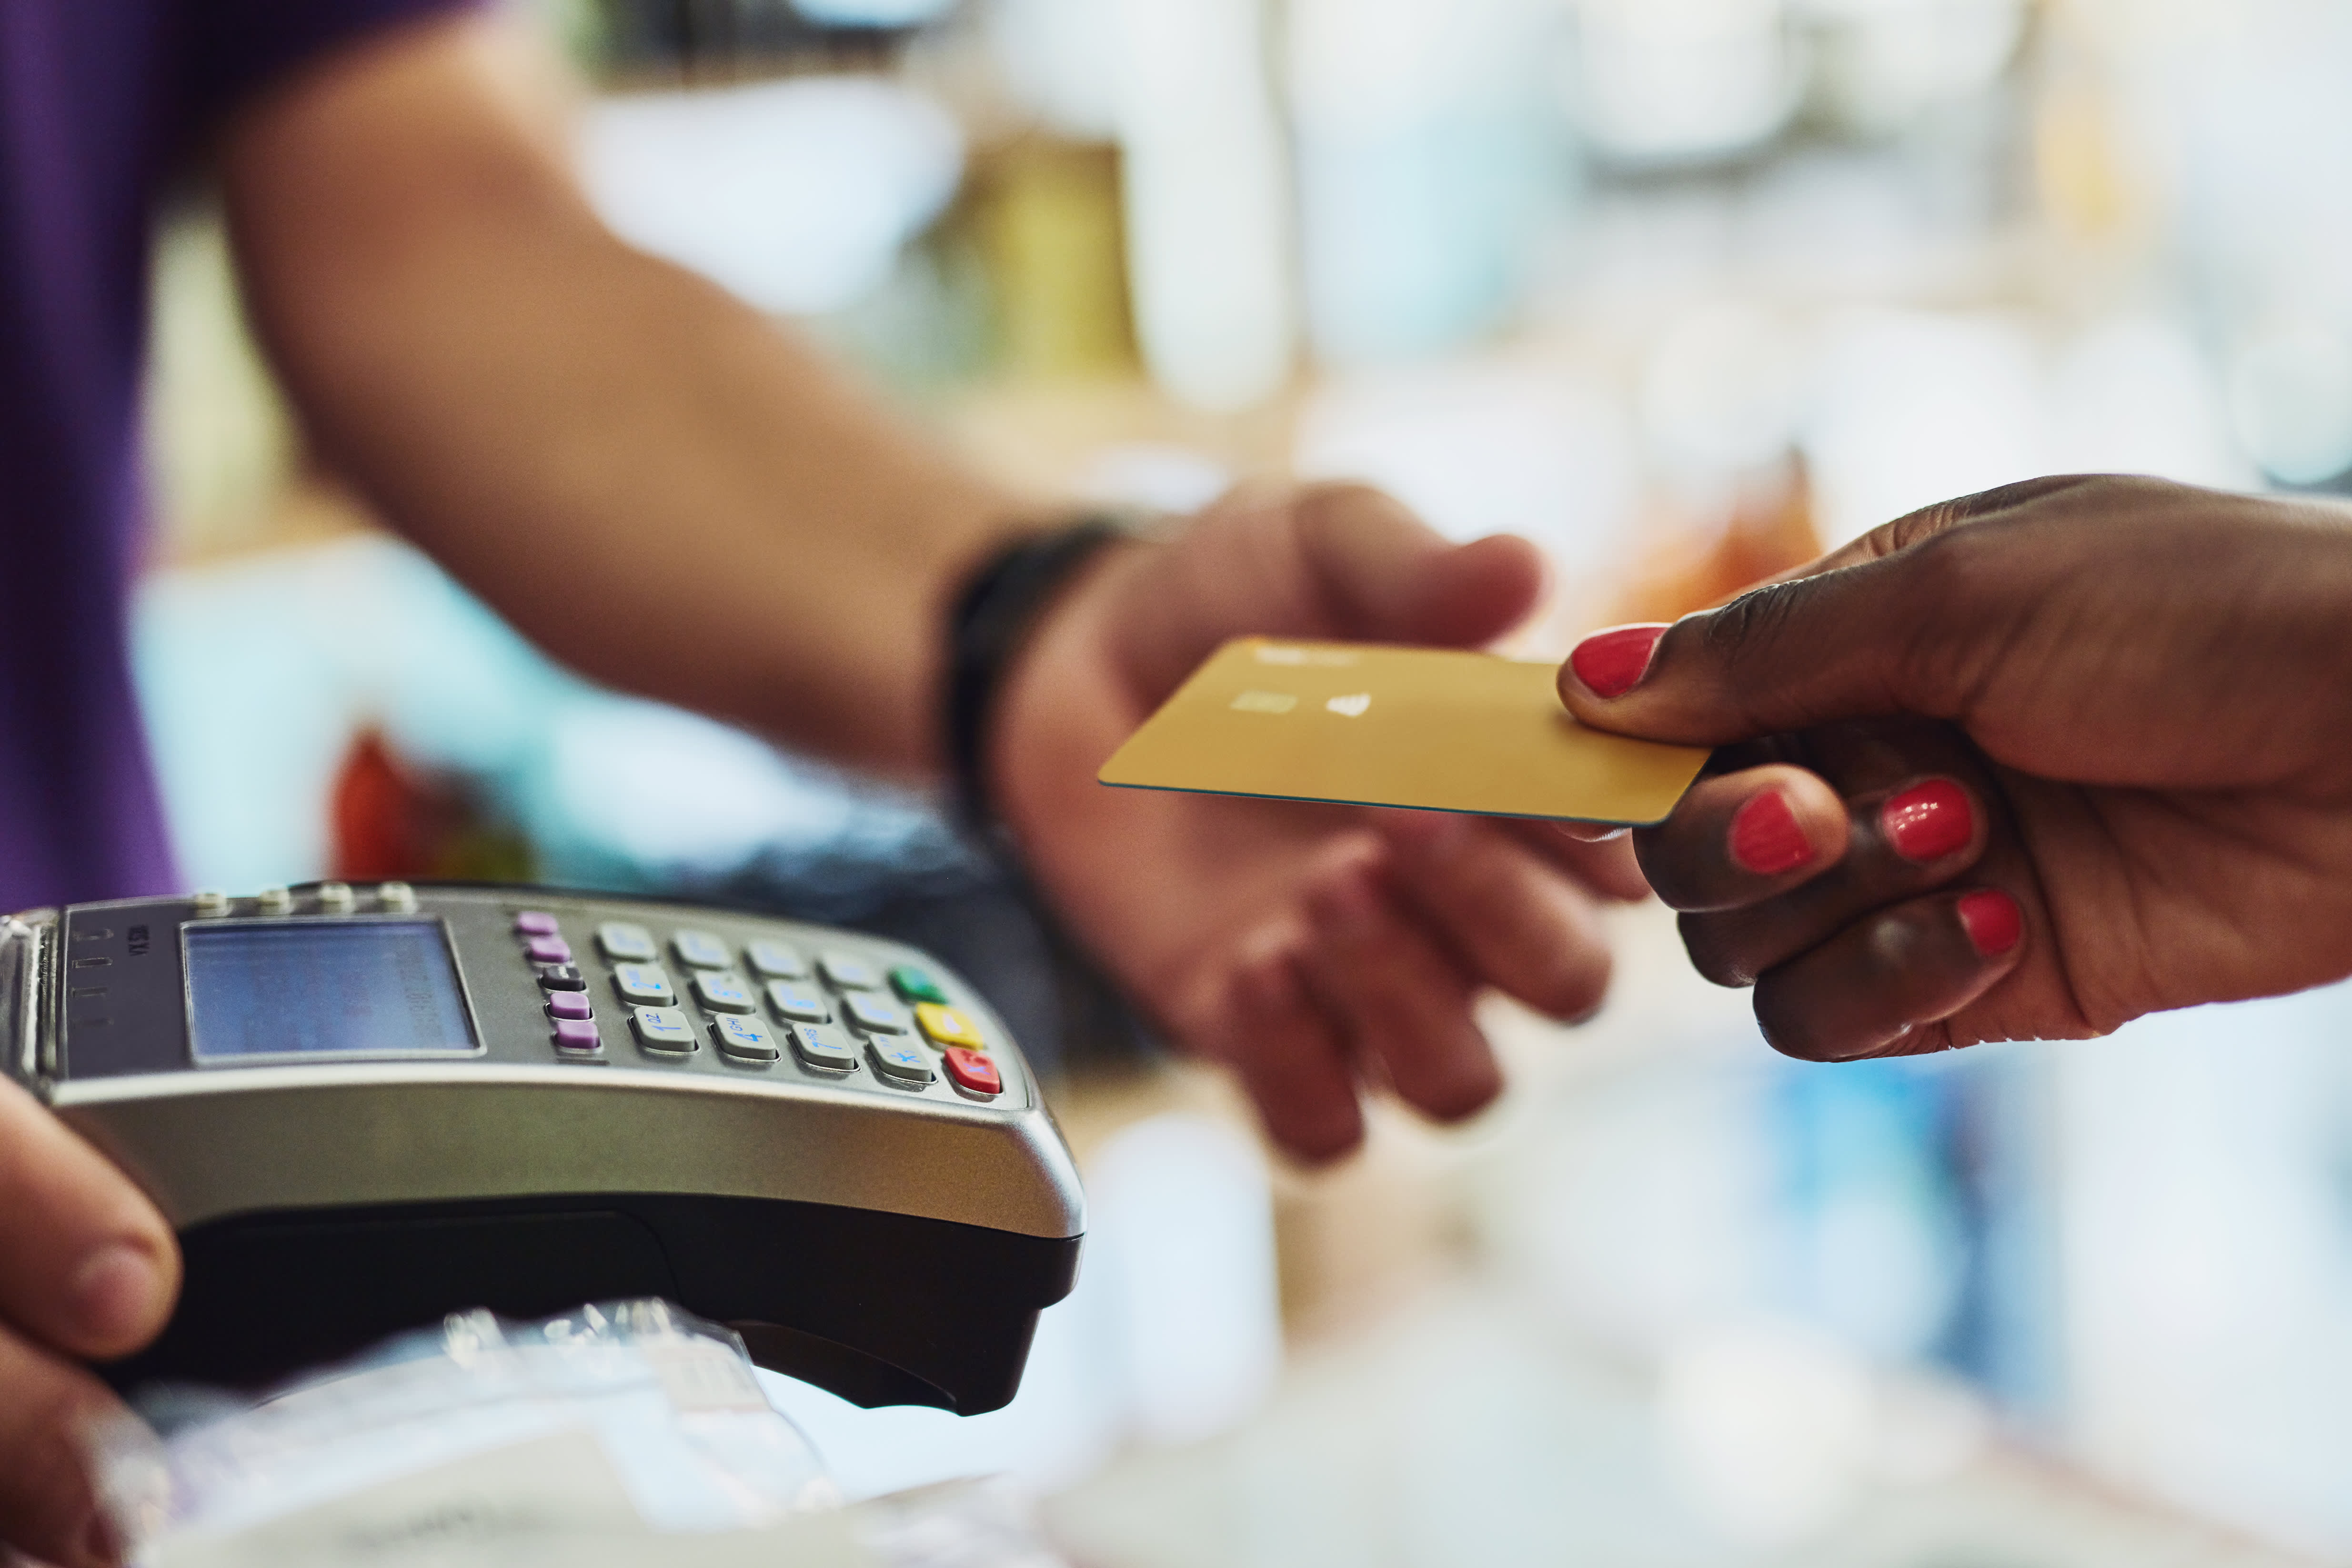 Walmart Credit Cards vs Target RedCard: Which is the best for your wallet?